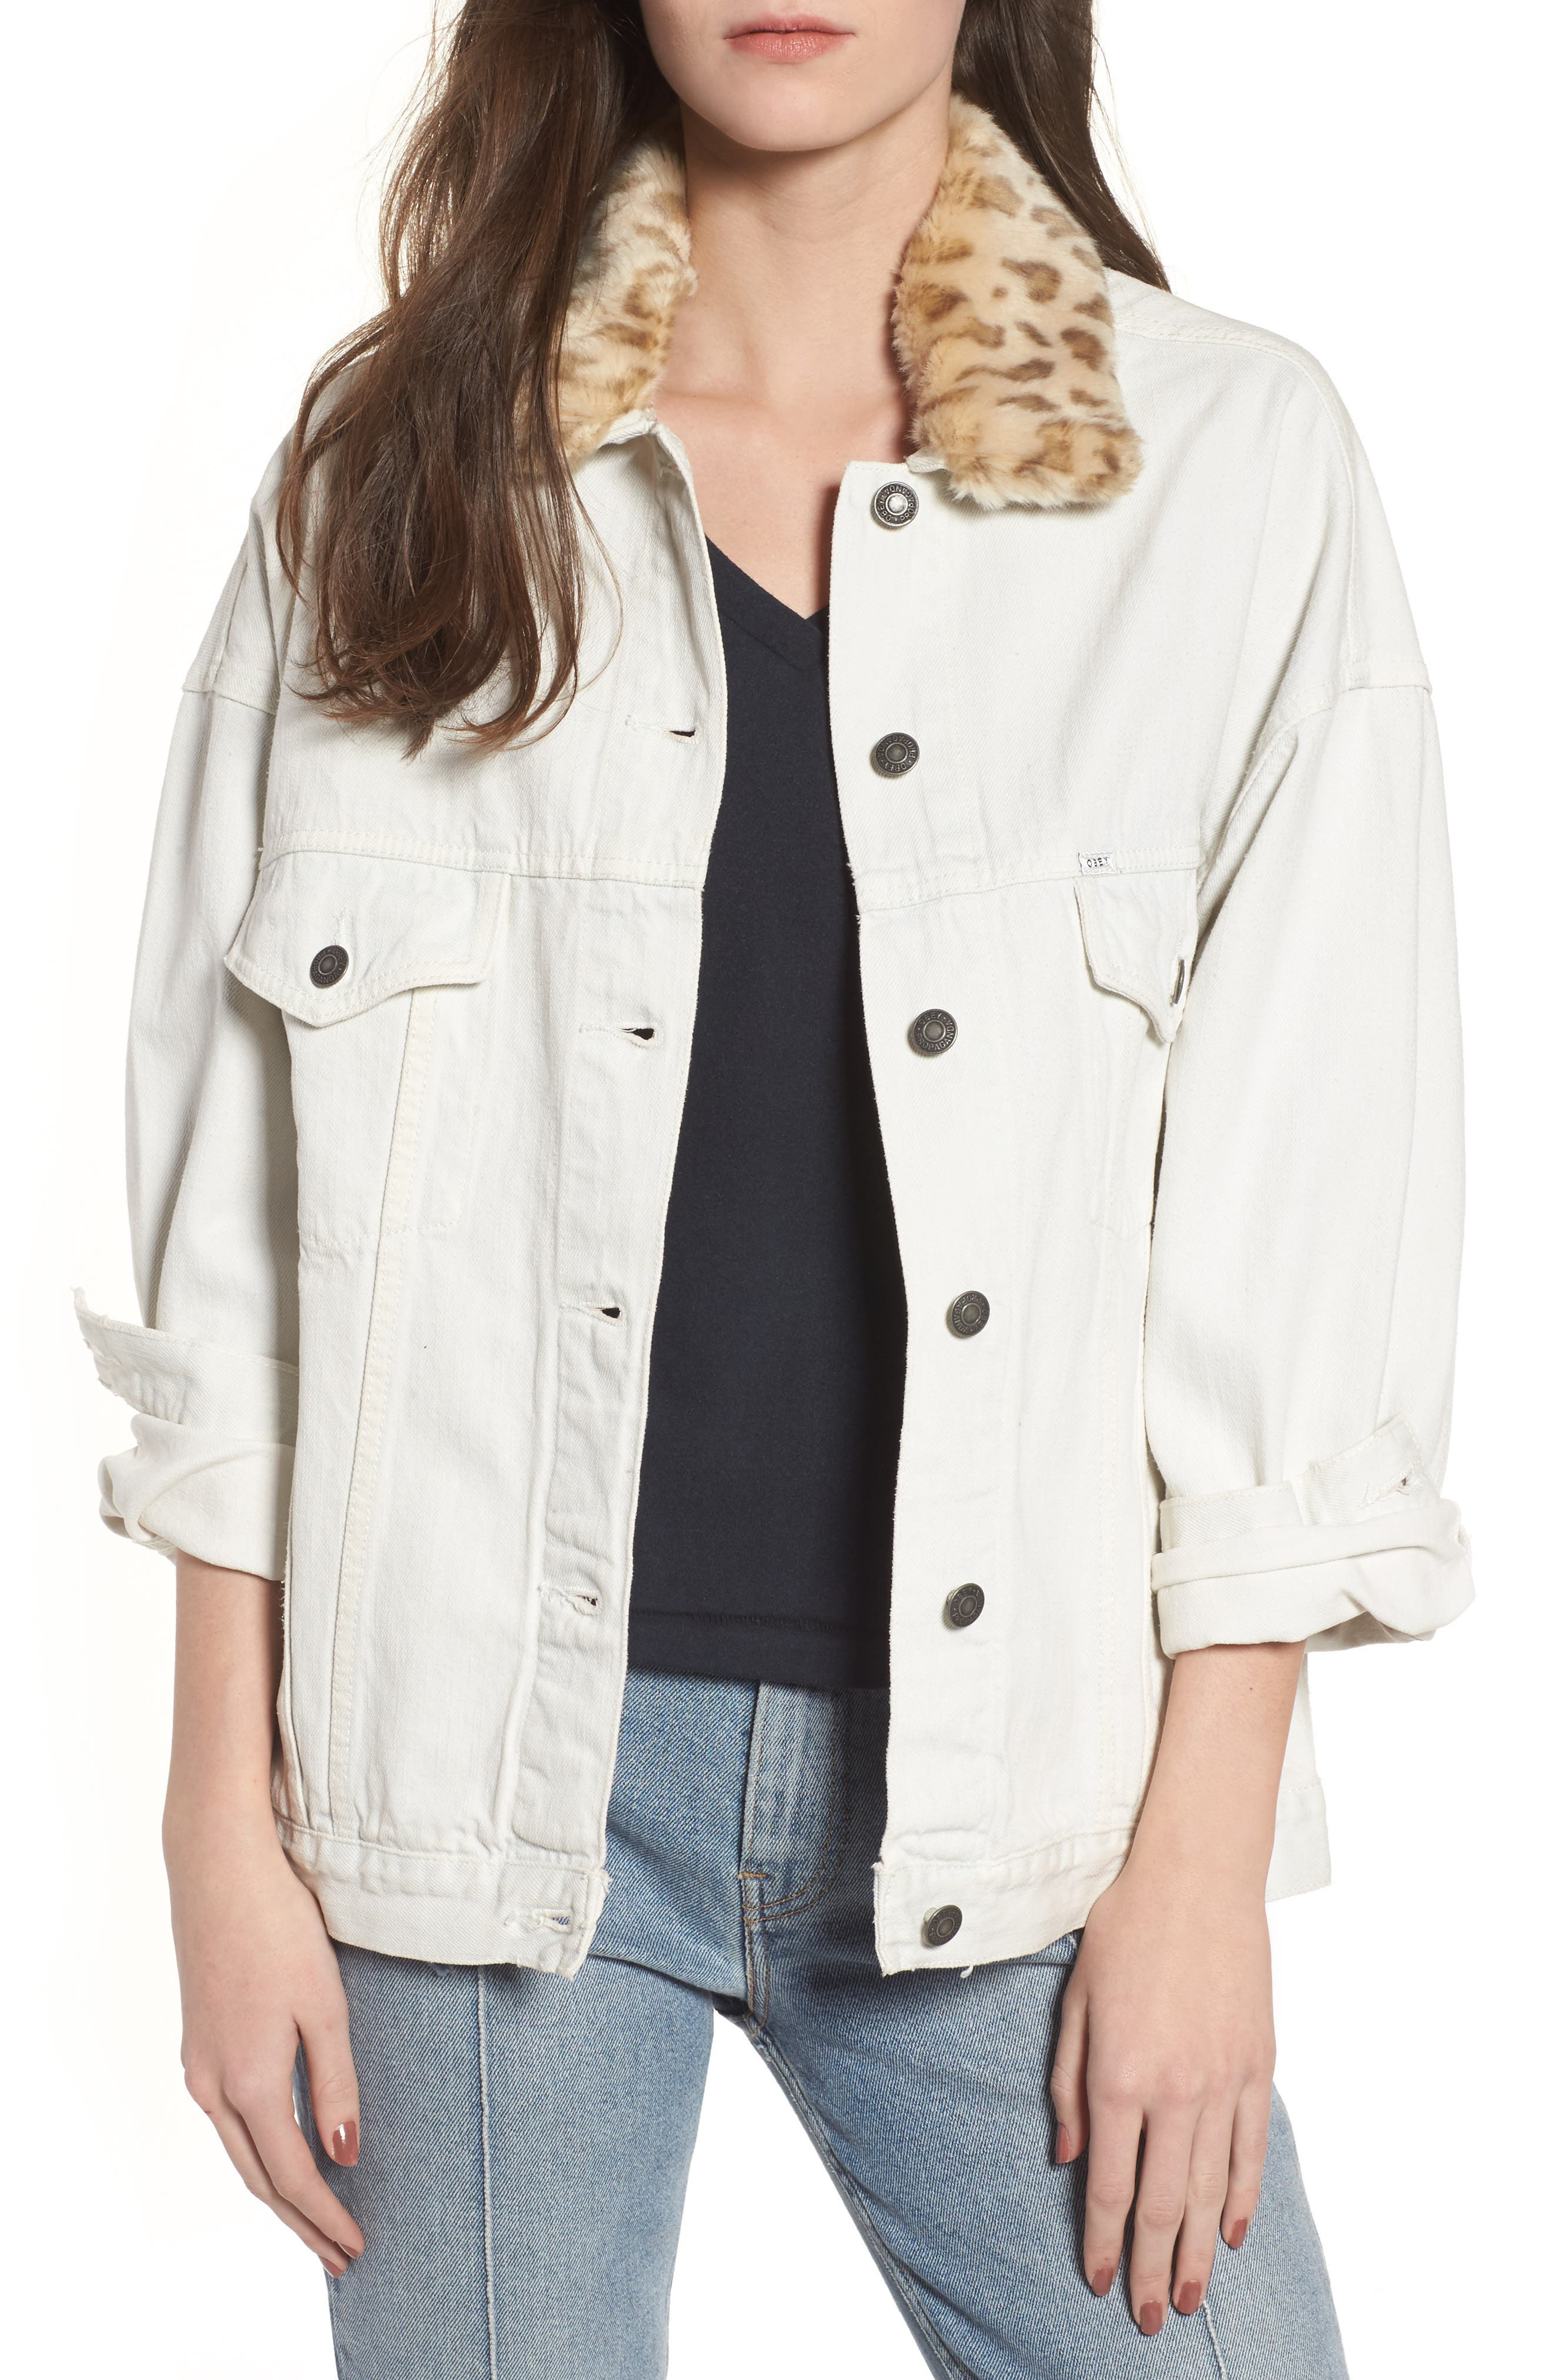 Alternate Image 1 Selected - Obey Wily Rider Jacket with Removable Faux Fur Collar